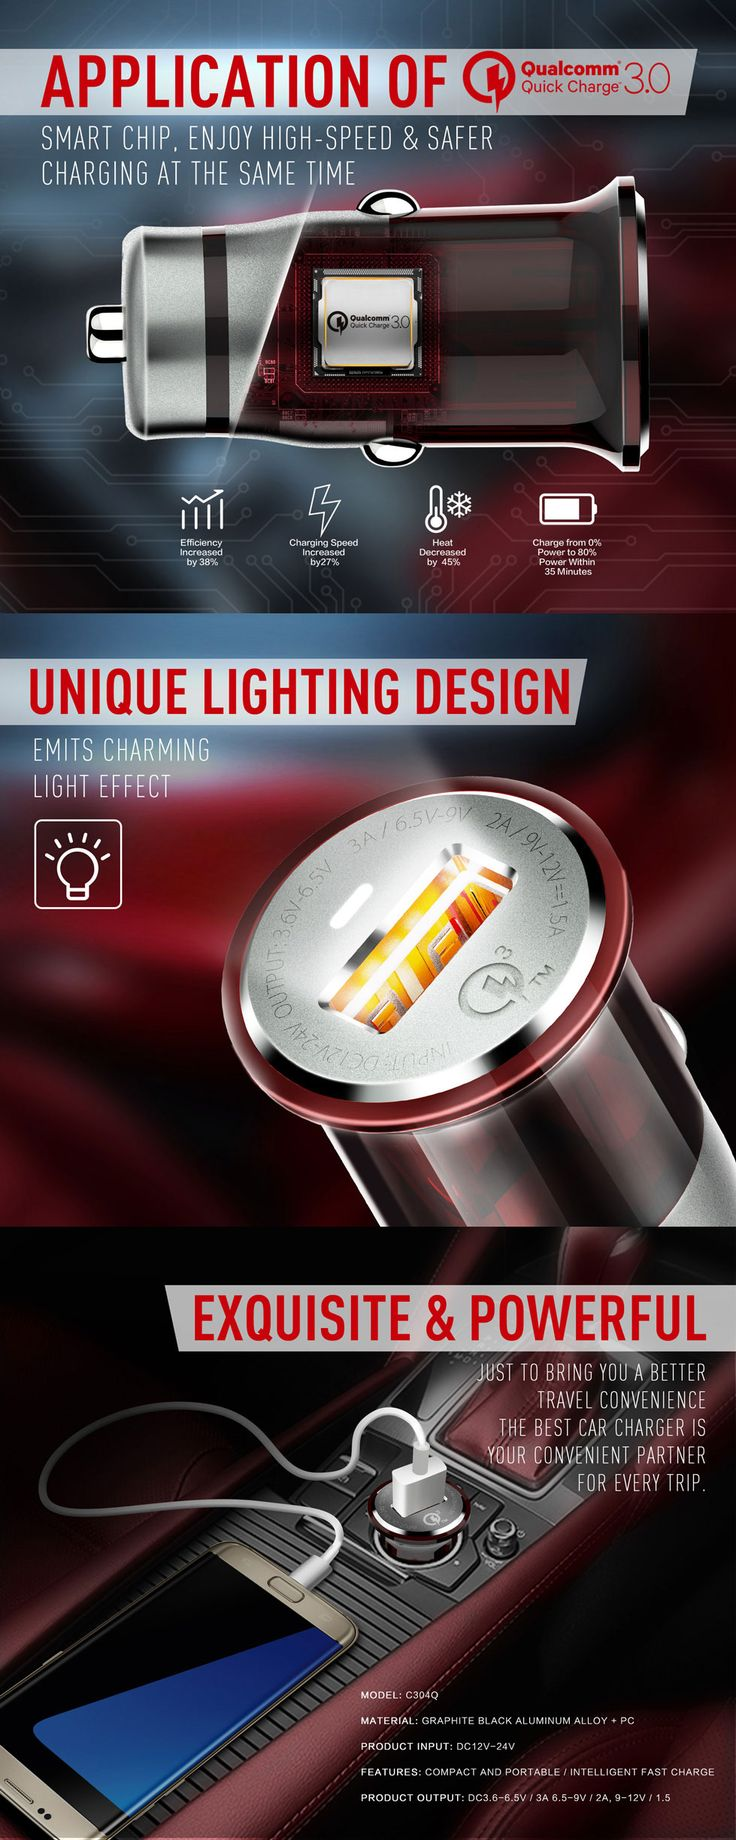 Compact and portable, exquisite supplying infinite power.Made of graphite black aluminum alloy shell.Application of Qualcomm 3.0 smart chip - enjoy high speed and safer charging at the same time.Designed with safety, compatibility, reliability and quality.Unique lighting design emits charming light effect.